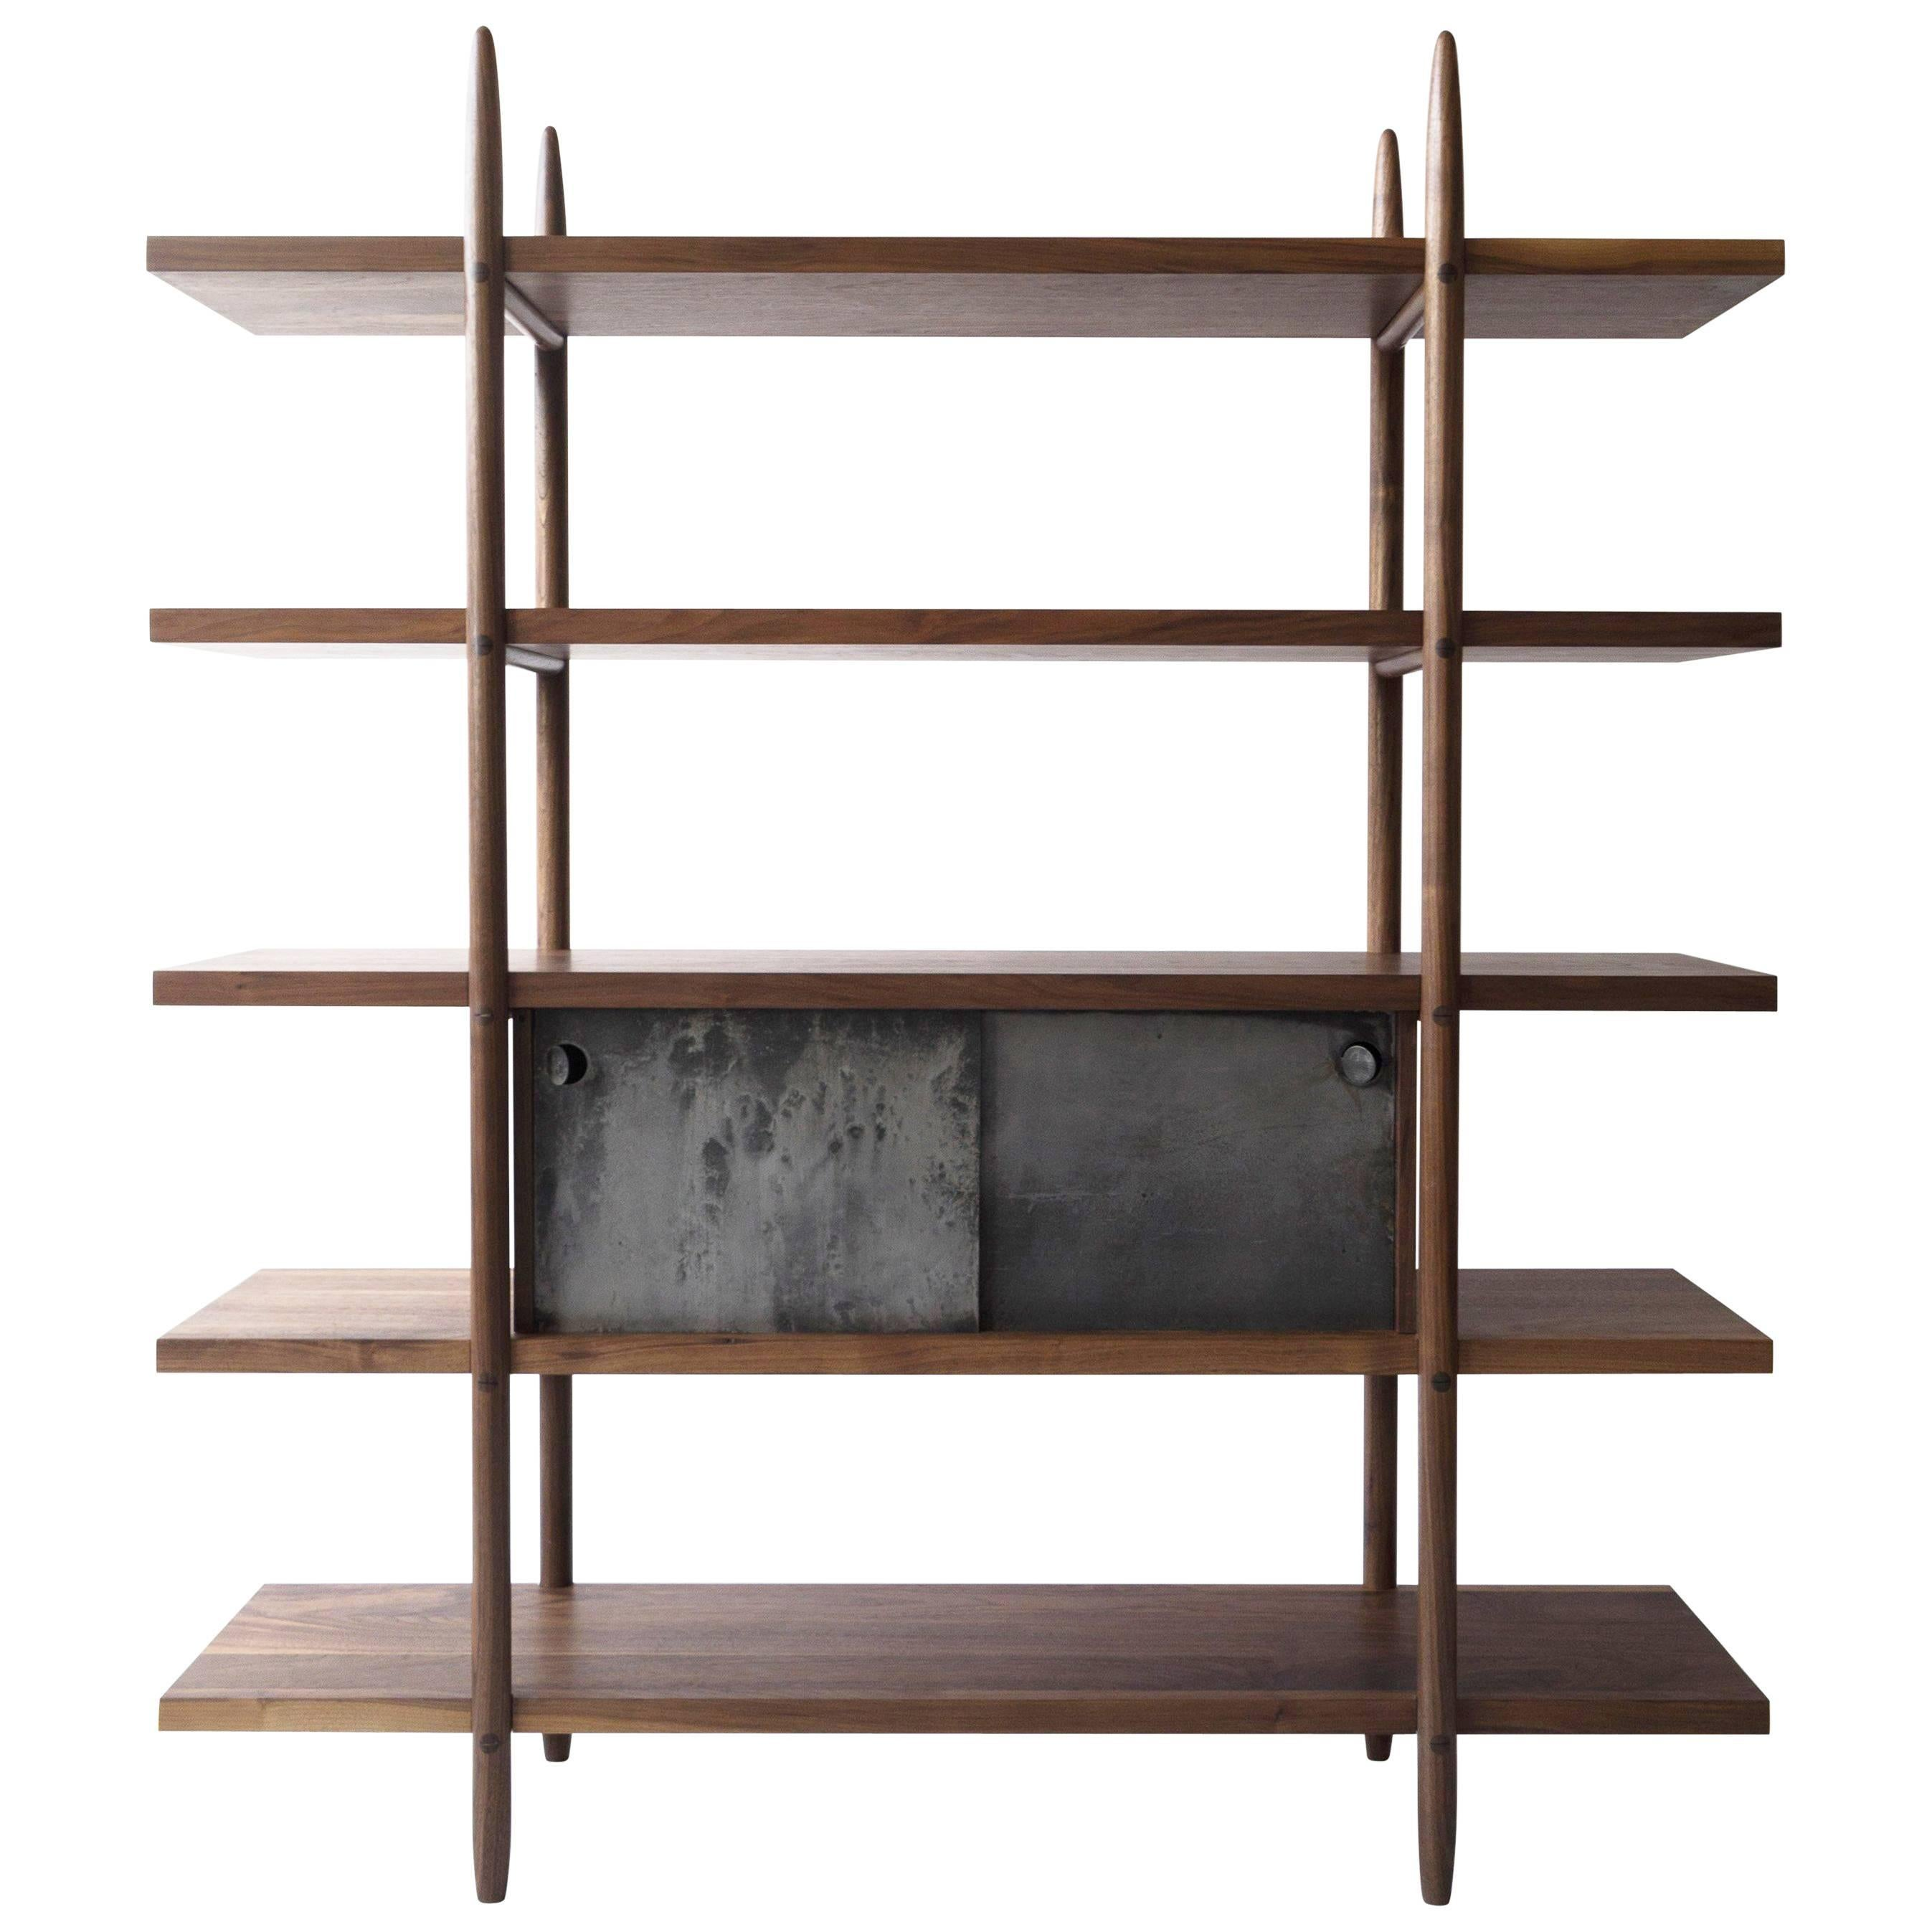 Orchestra Contemporary Leather And Wood Modular Shelving System